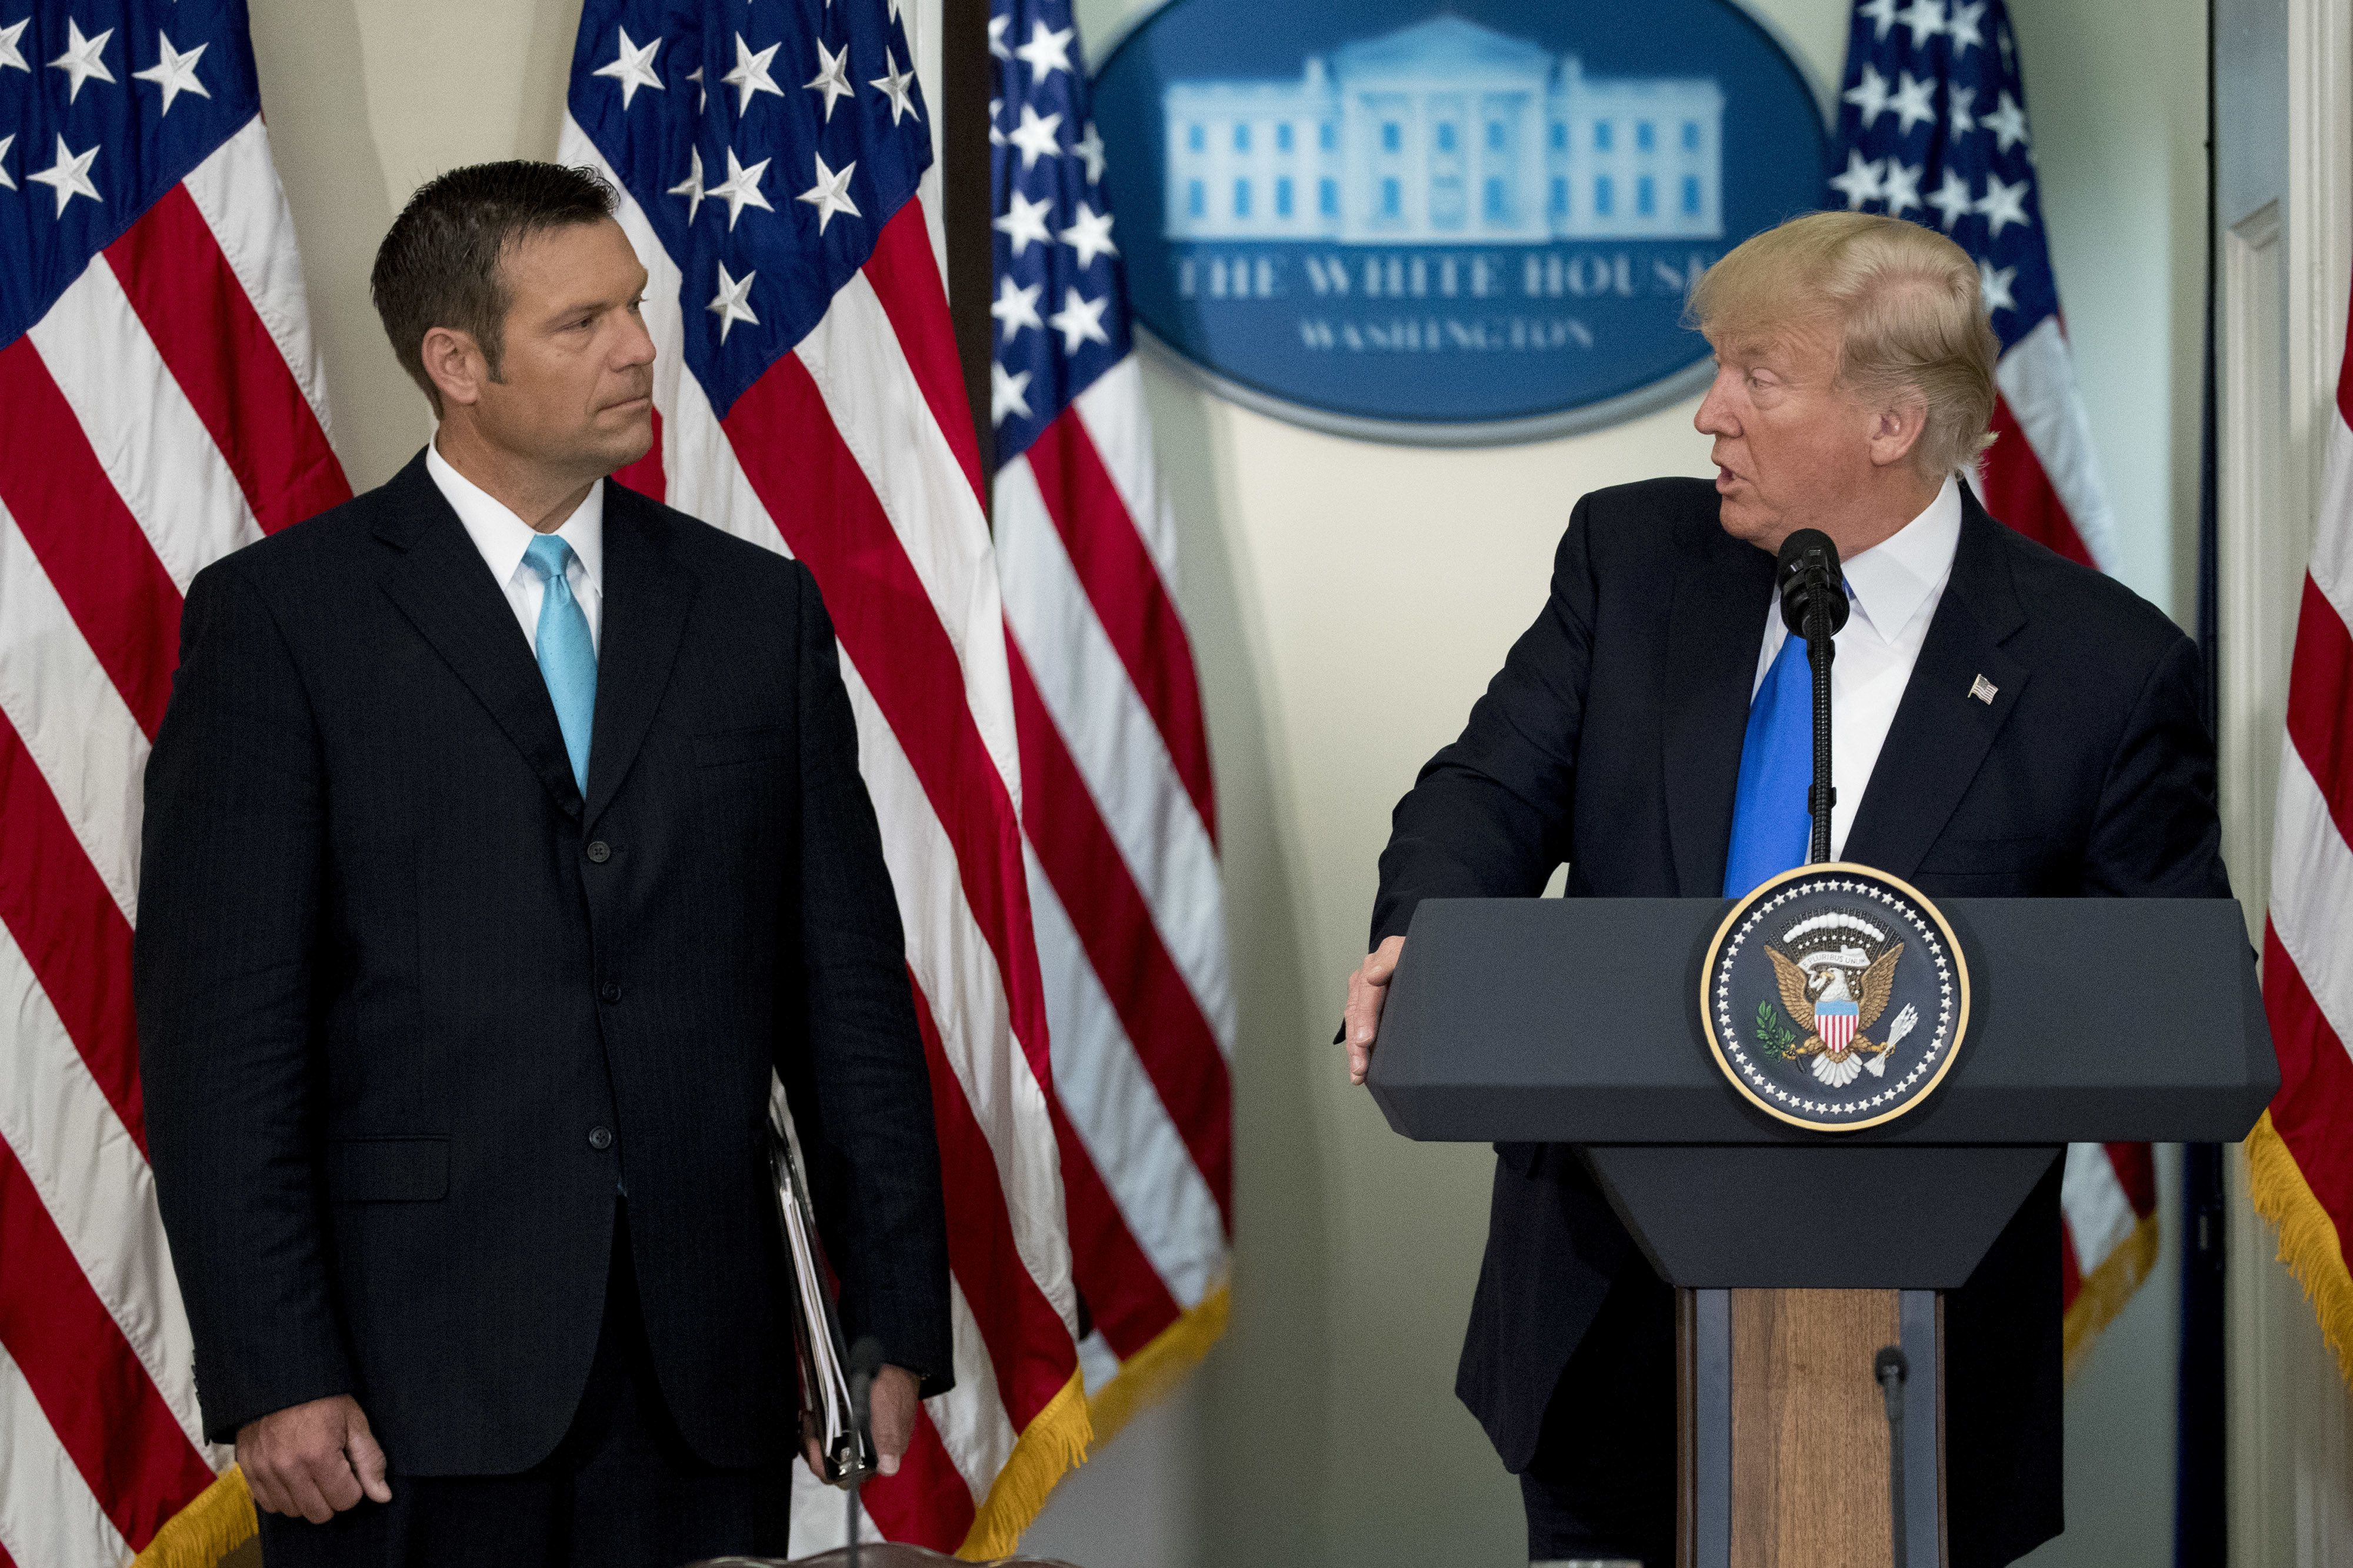 President Donald Trump speaks as Kris Kobach, Kansass secretary of state, listens during the initial meeting of the President